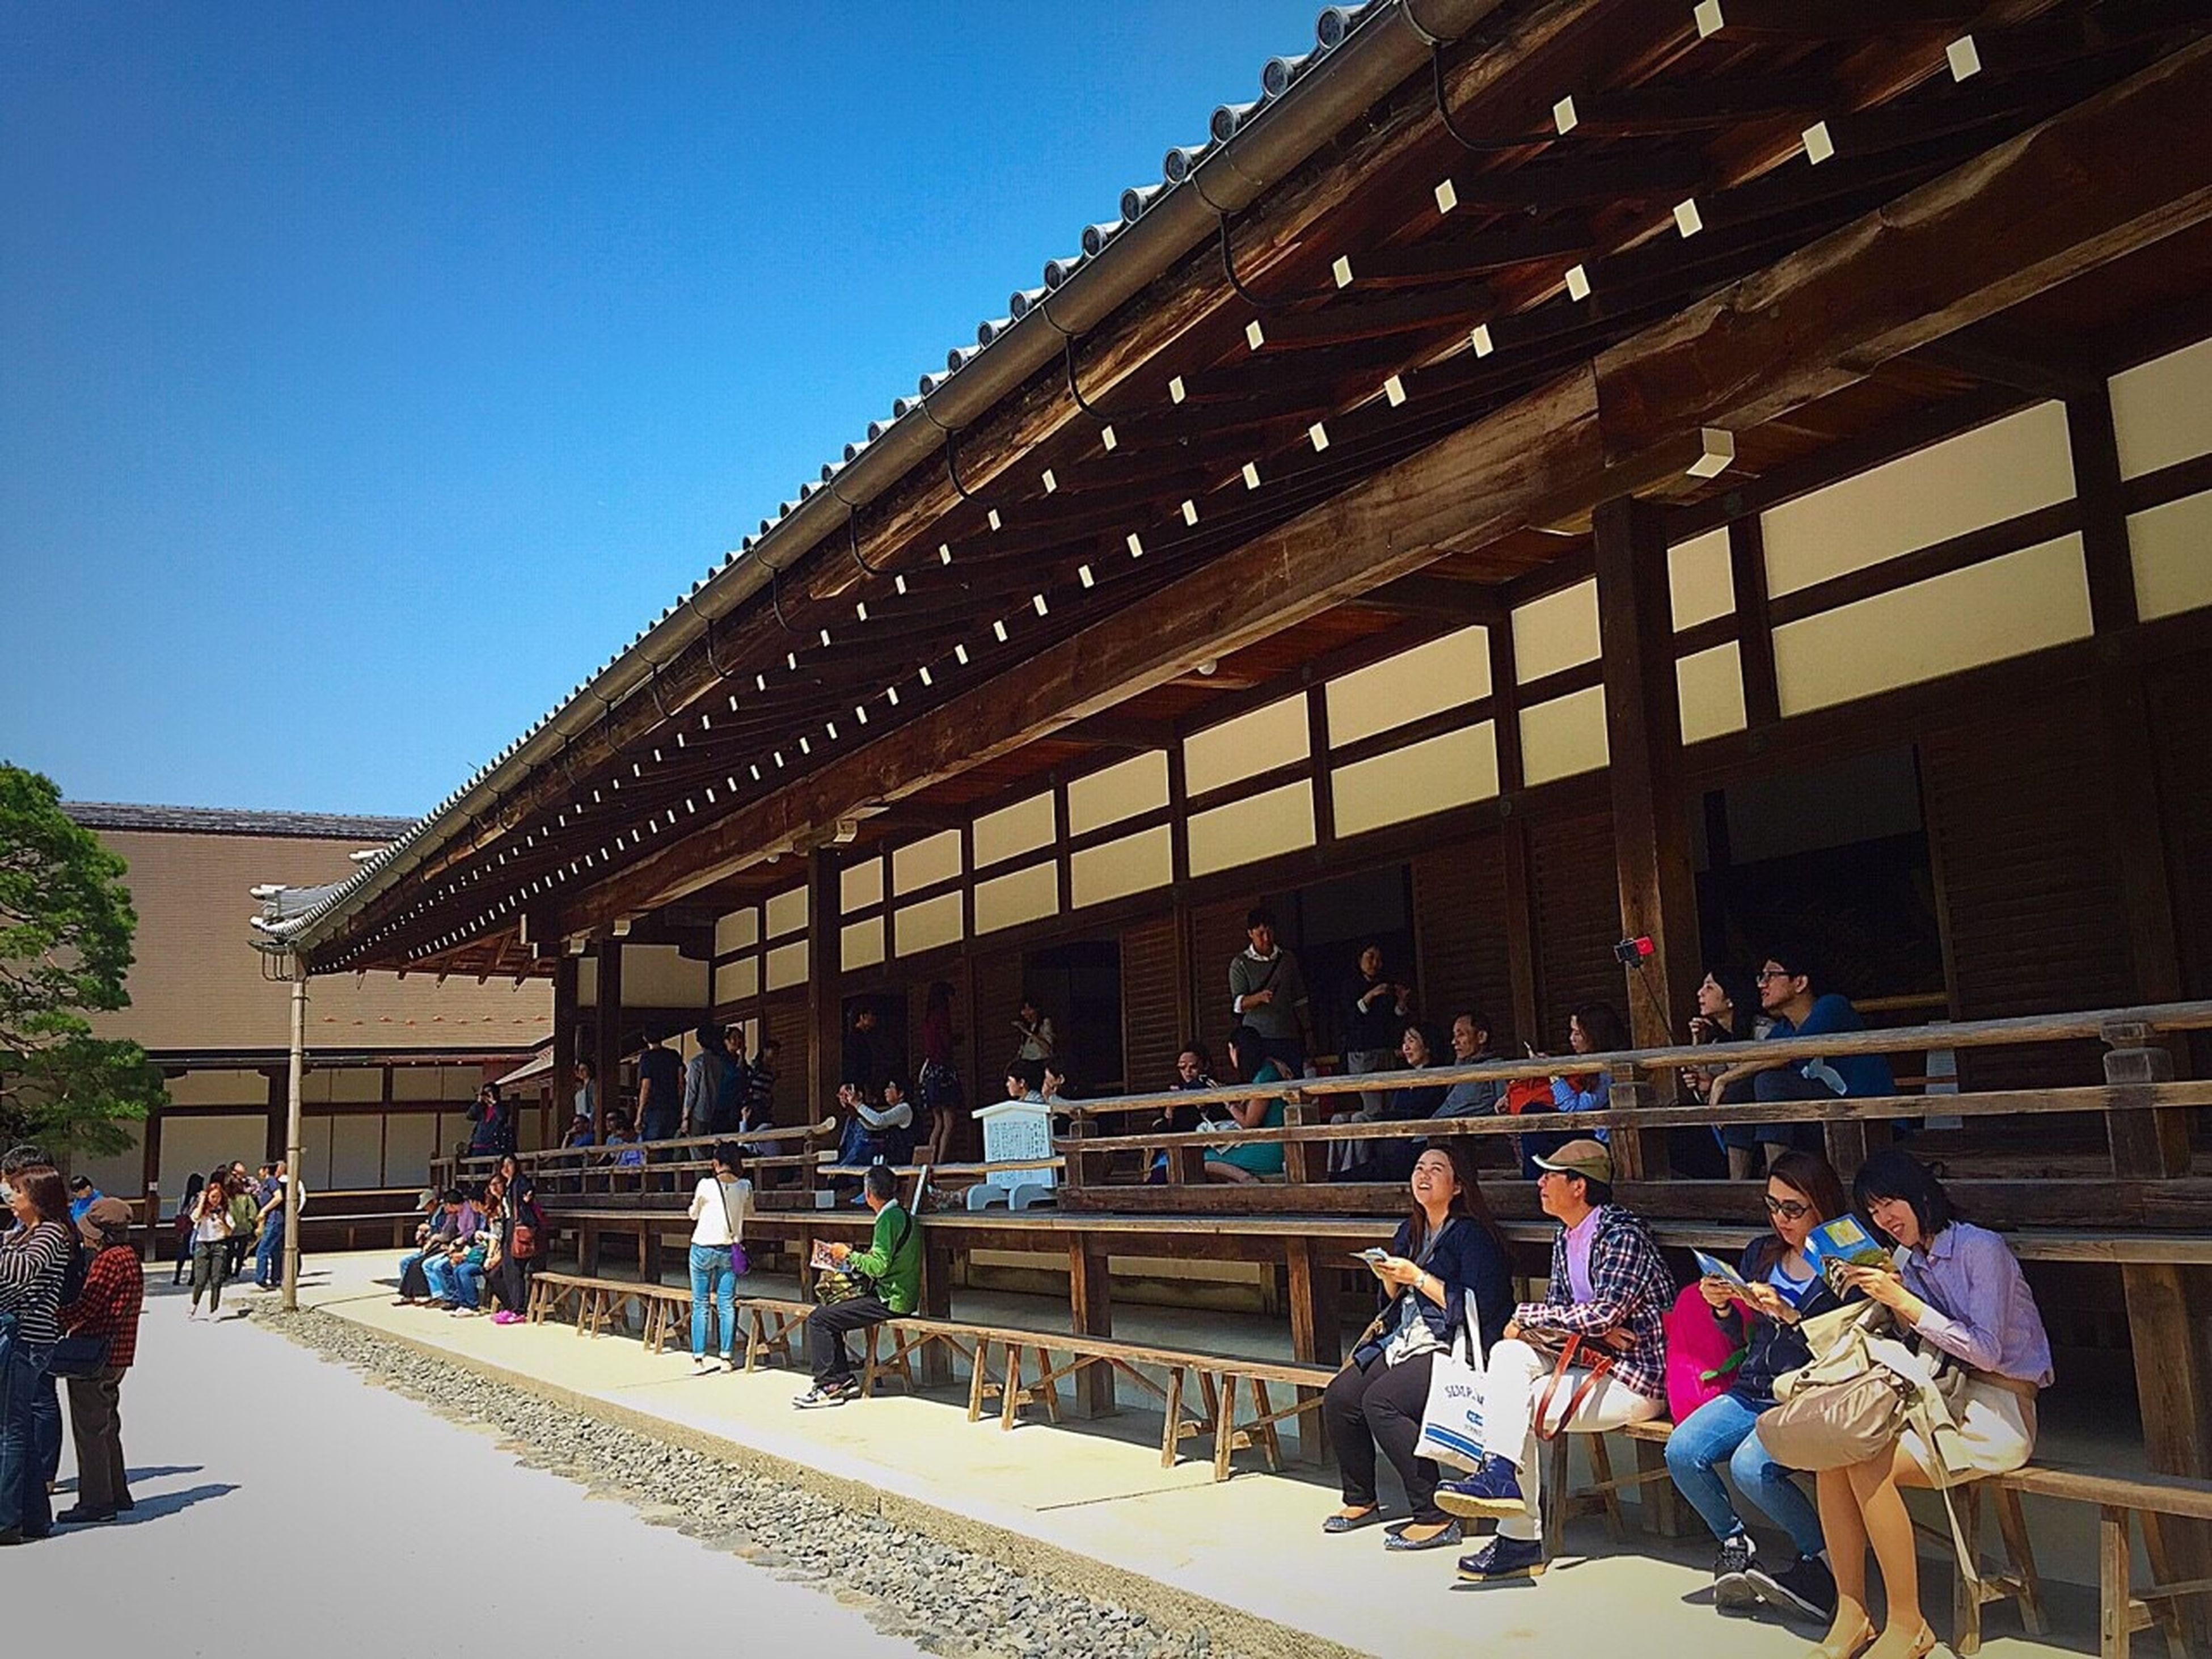 architecture, large group of people, built structure, building exterior, person, men, lifestyles, clear sky, leisure activity, mixed age range, walking, city, city life, sunlight, group of people, day, medium group of people, steps, tourist